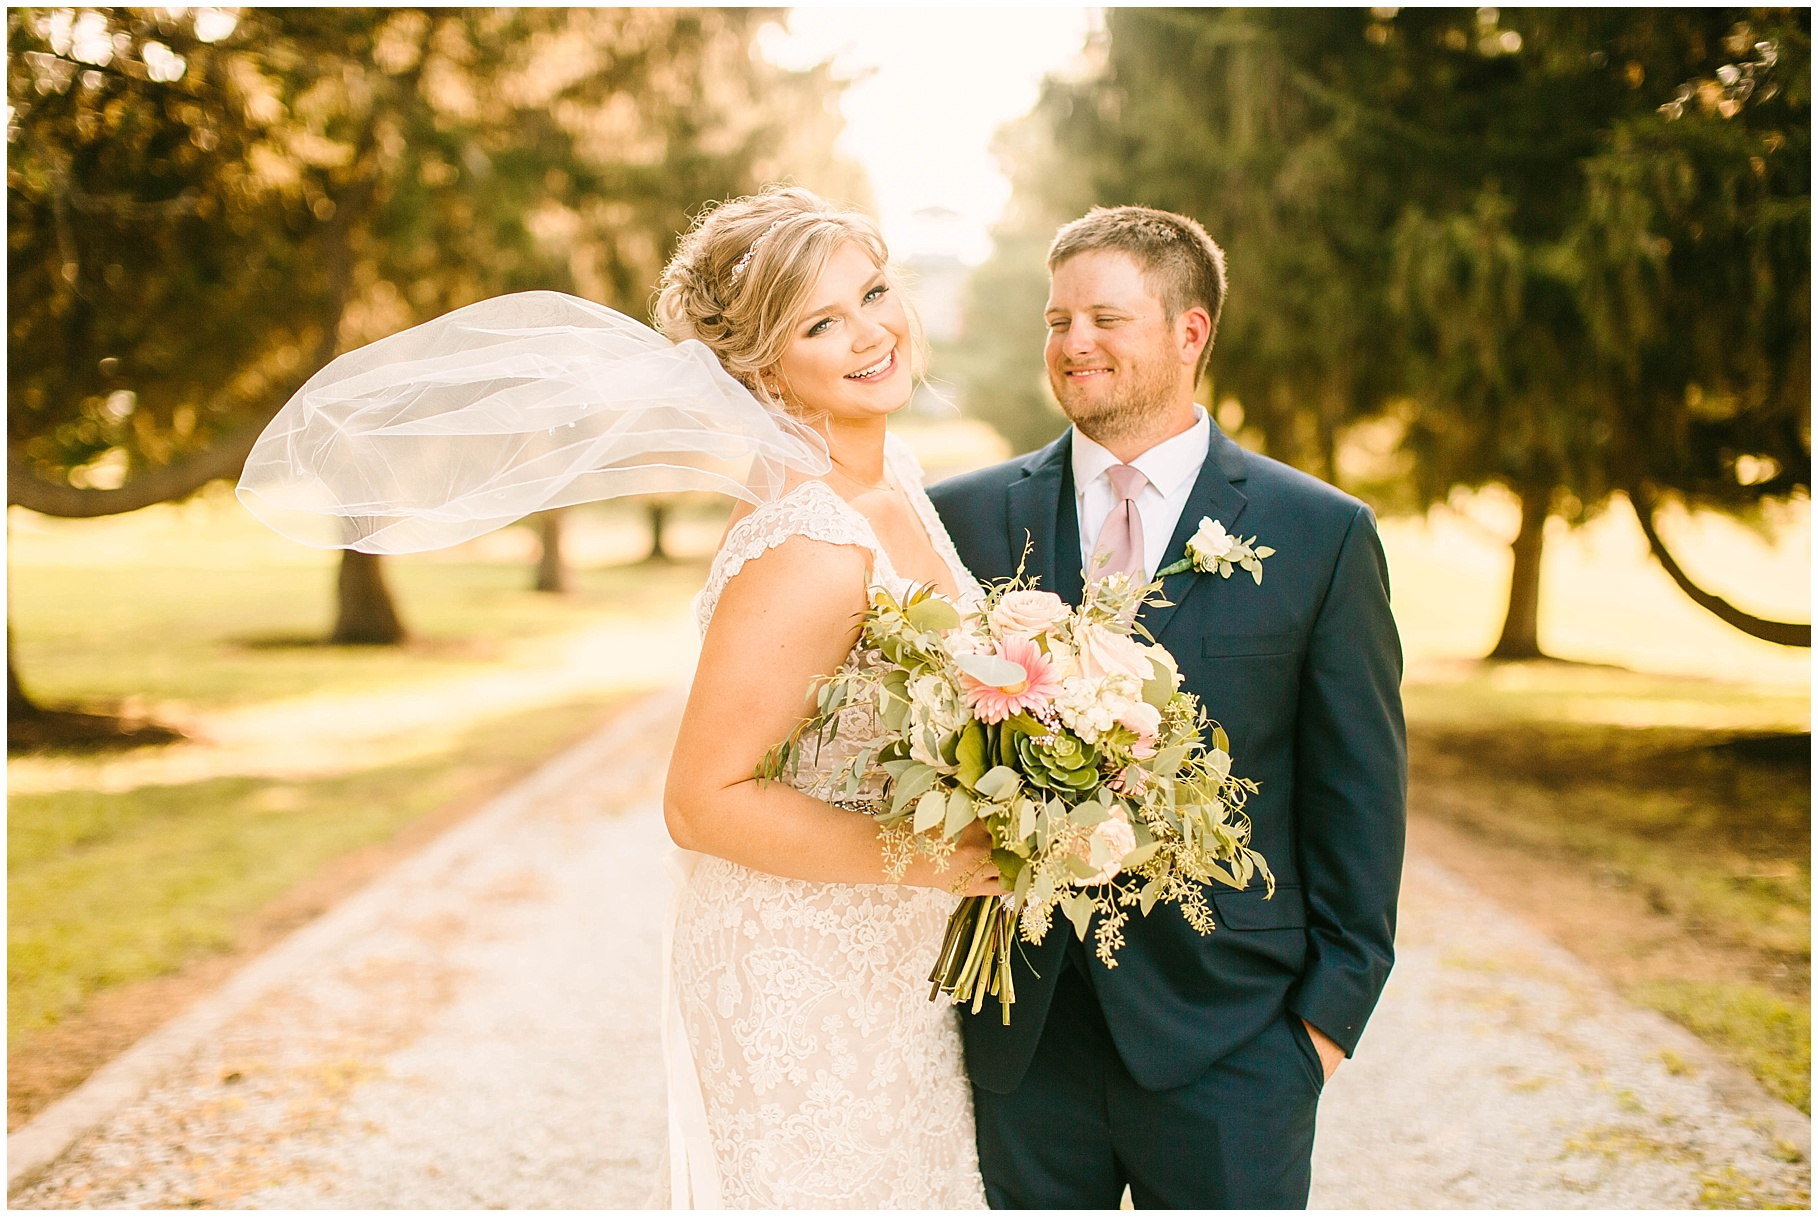 Veronica Young Photography, country summer wedding, St. Louis wedding photographer